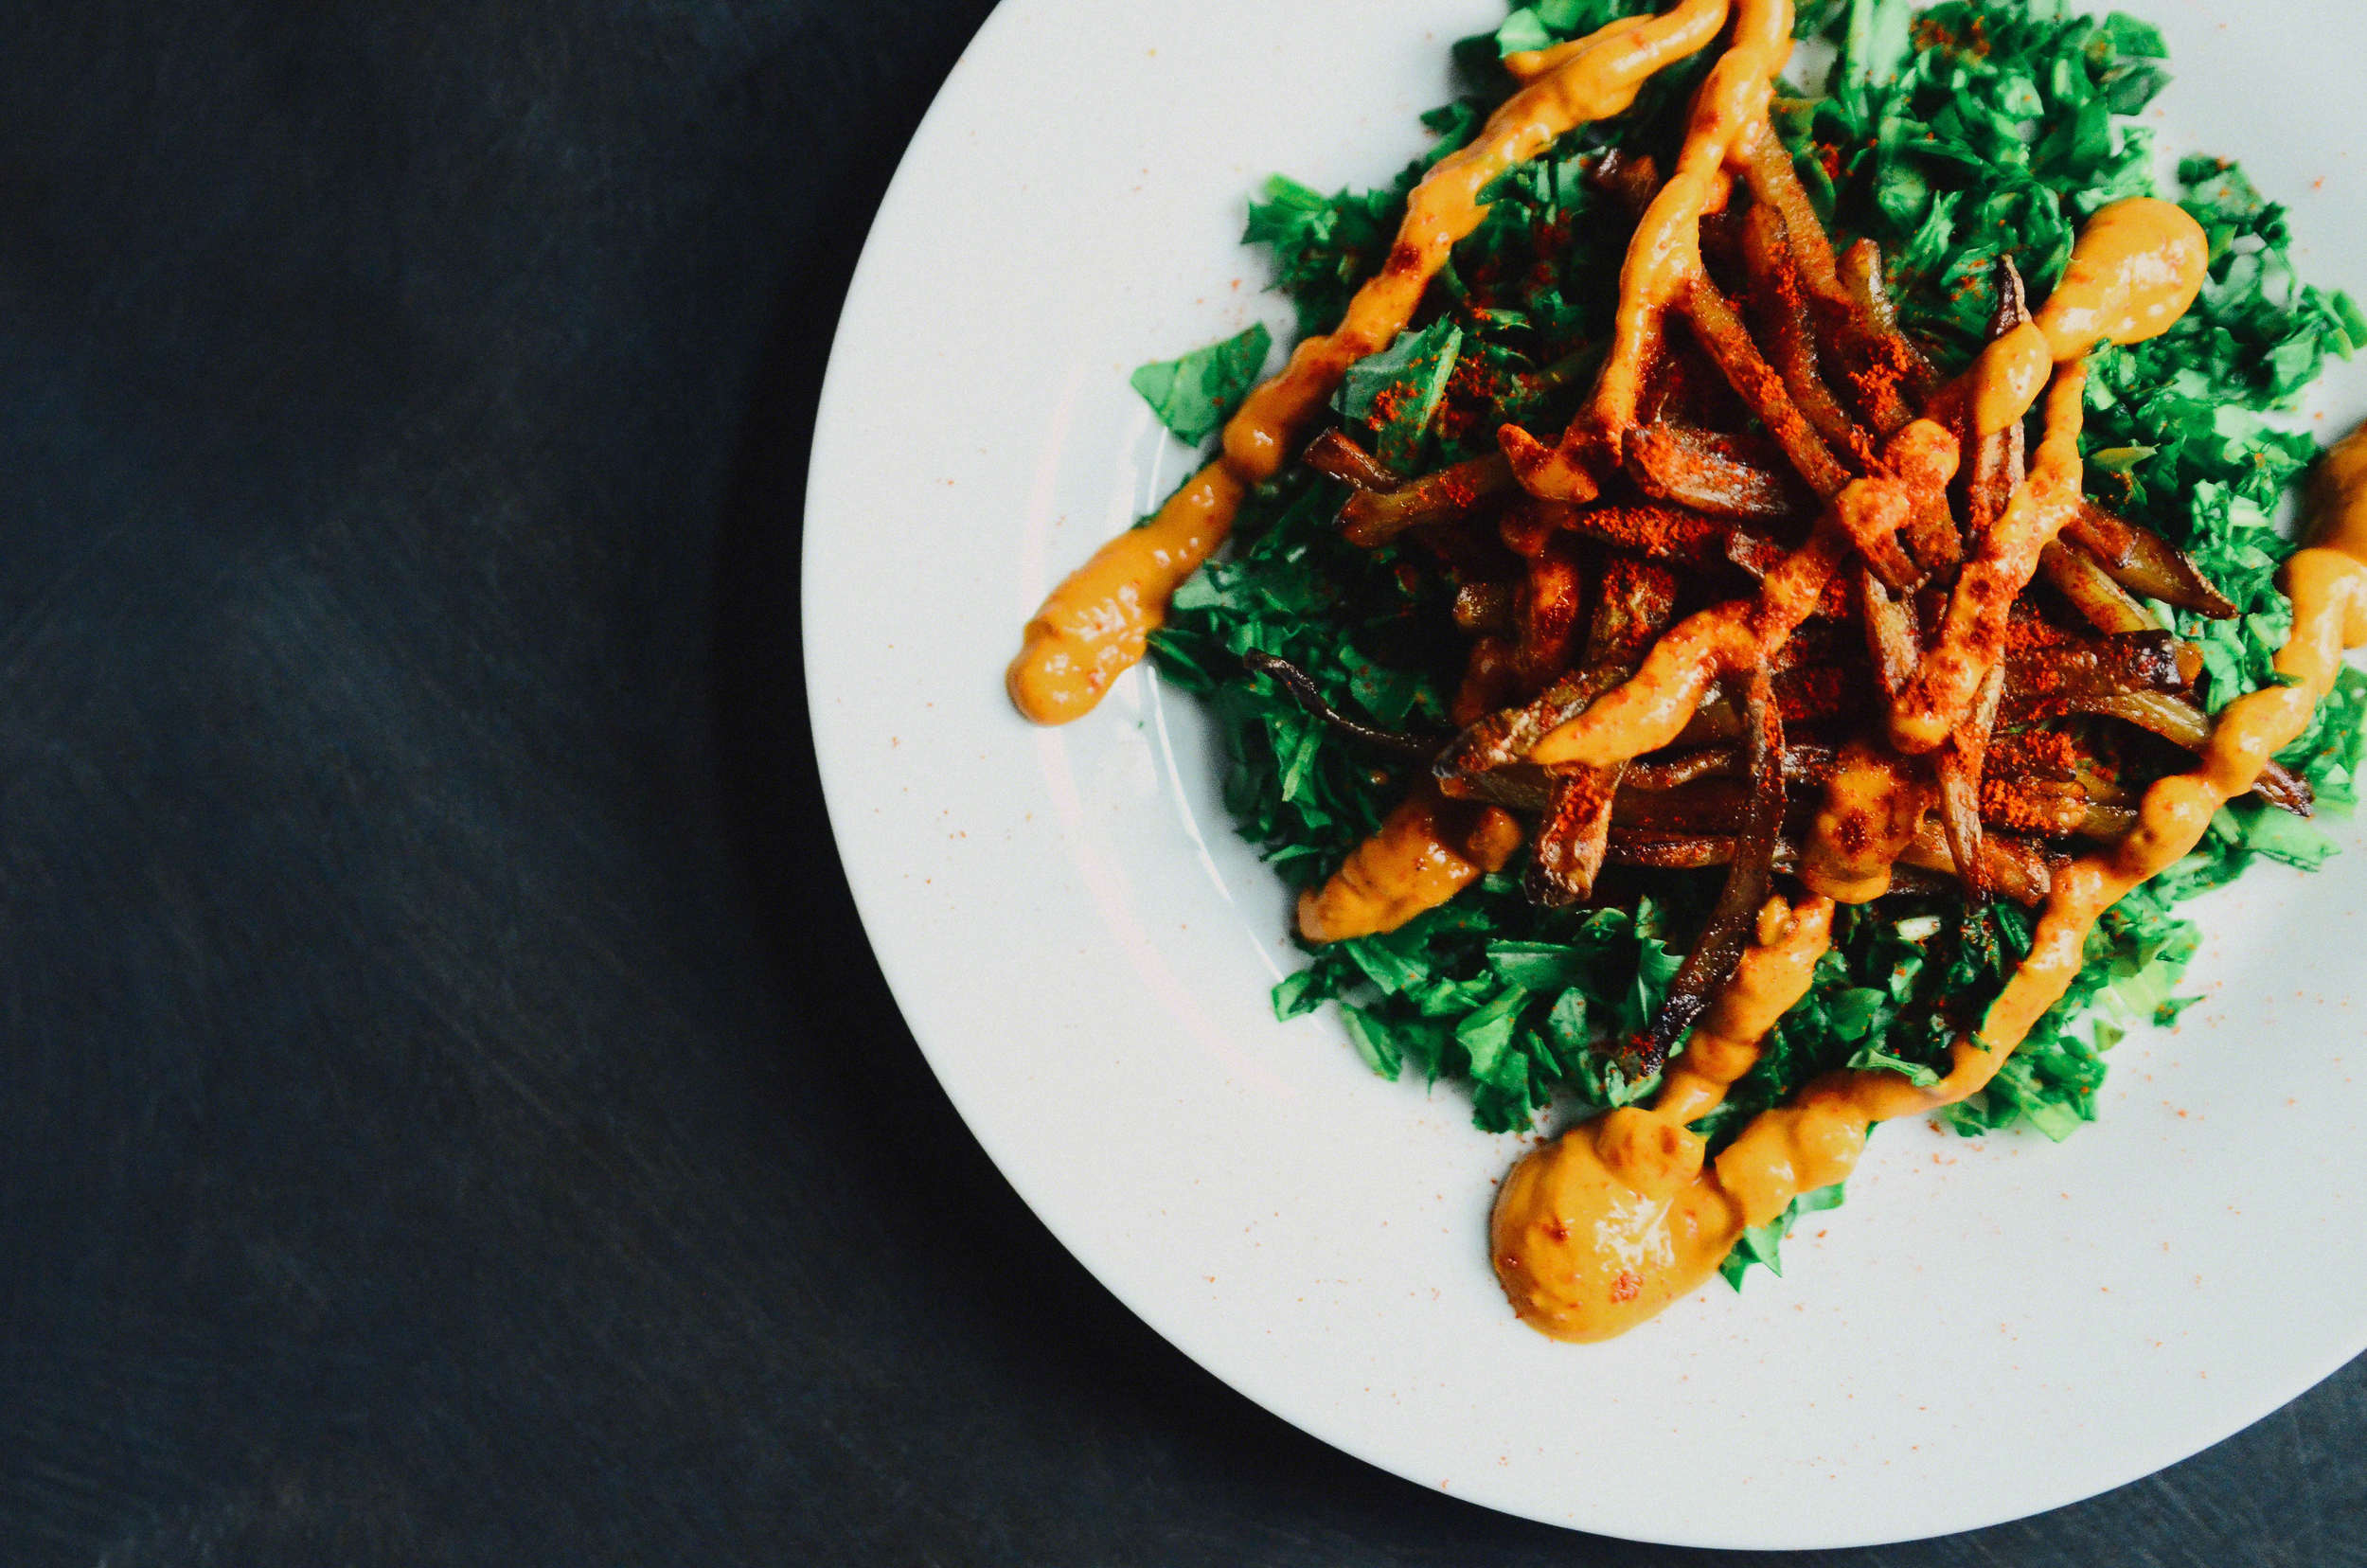 Smoky Baked Matchstick Fries with Chopped Arugula topped with Roasted Red Pepper Aioli(vegan) and Smoked Paprika   Seed Plant Water Grow